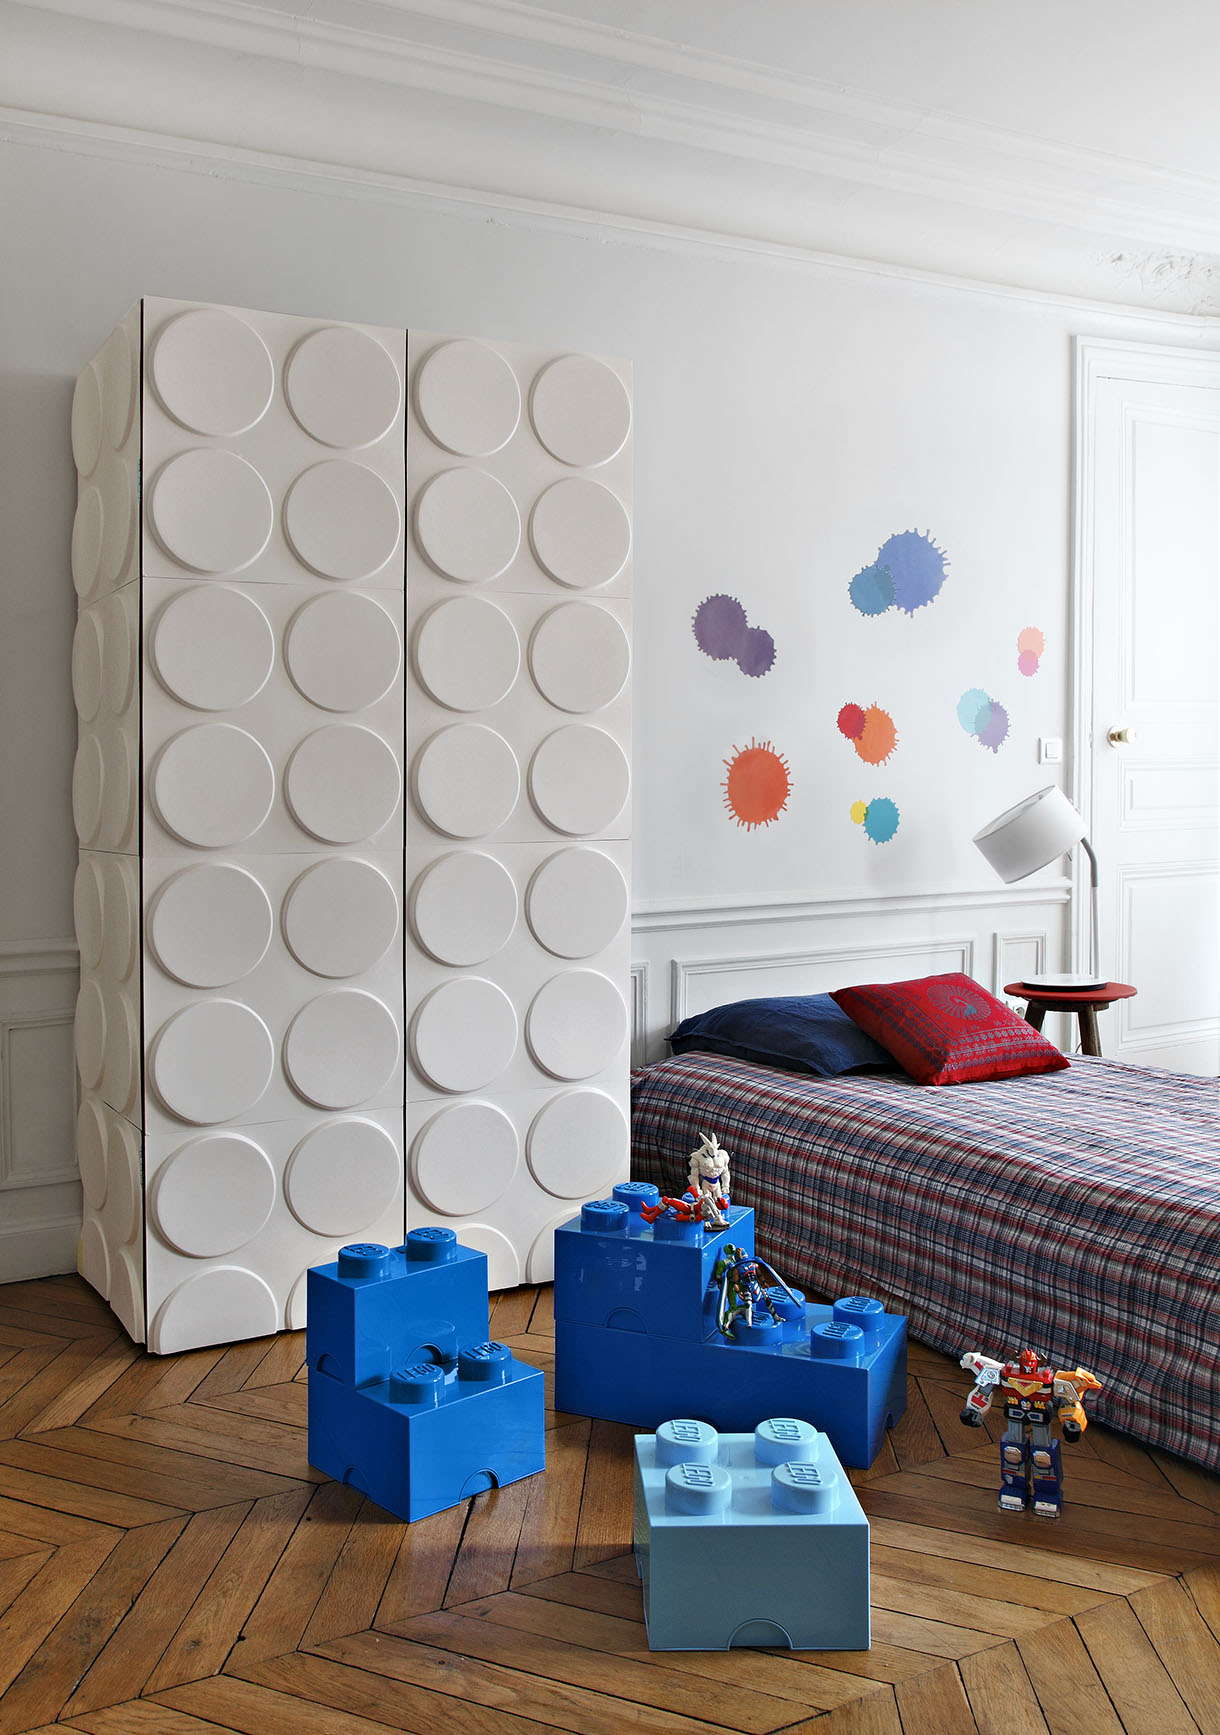 un air de lego votre armoire maison cr ative. Black Bedroom Furniture Sets. Home Design Ideas